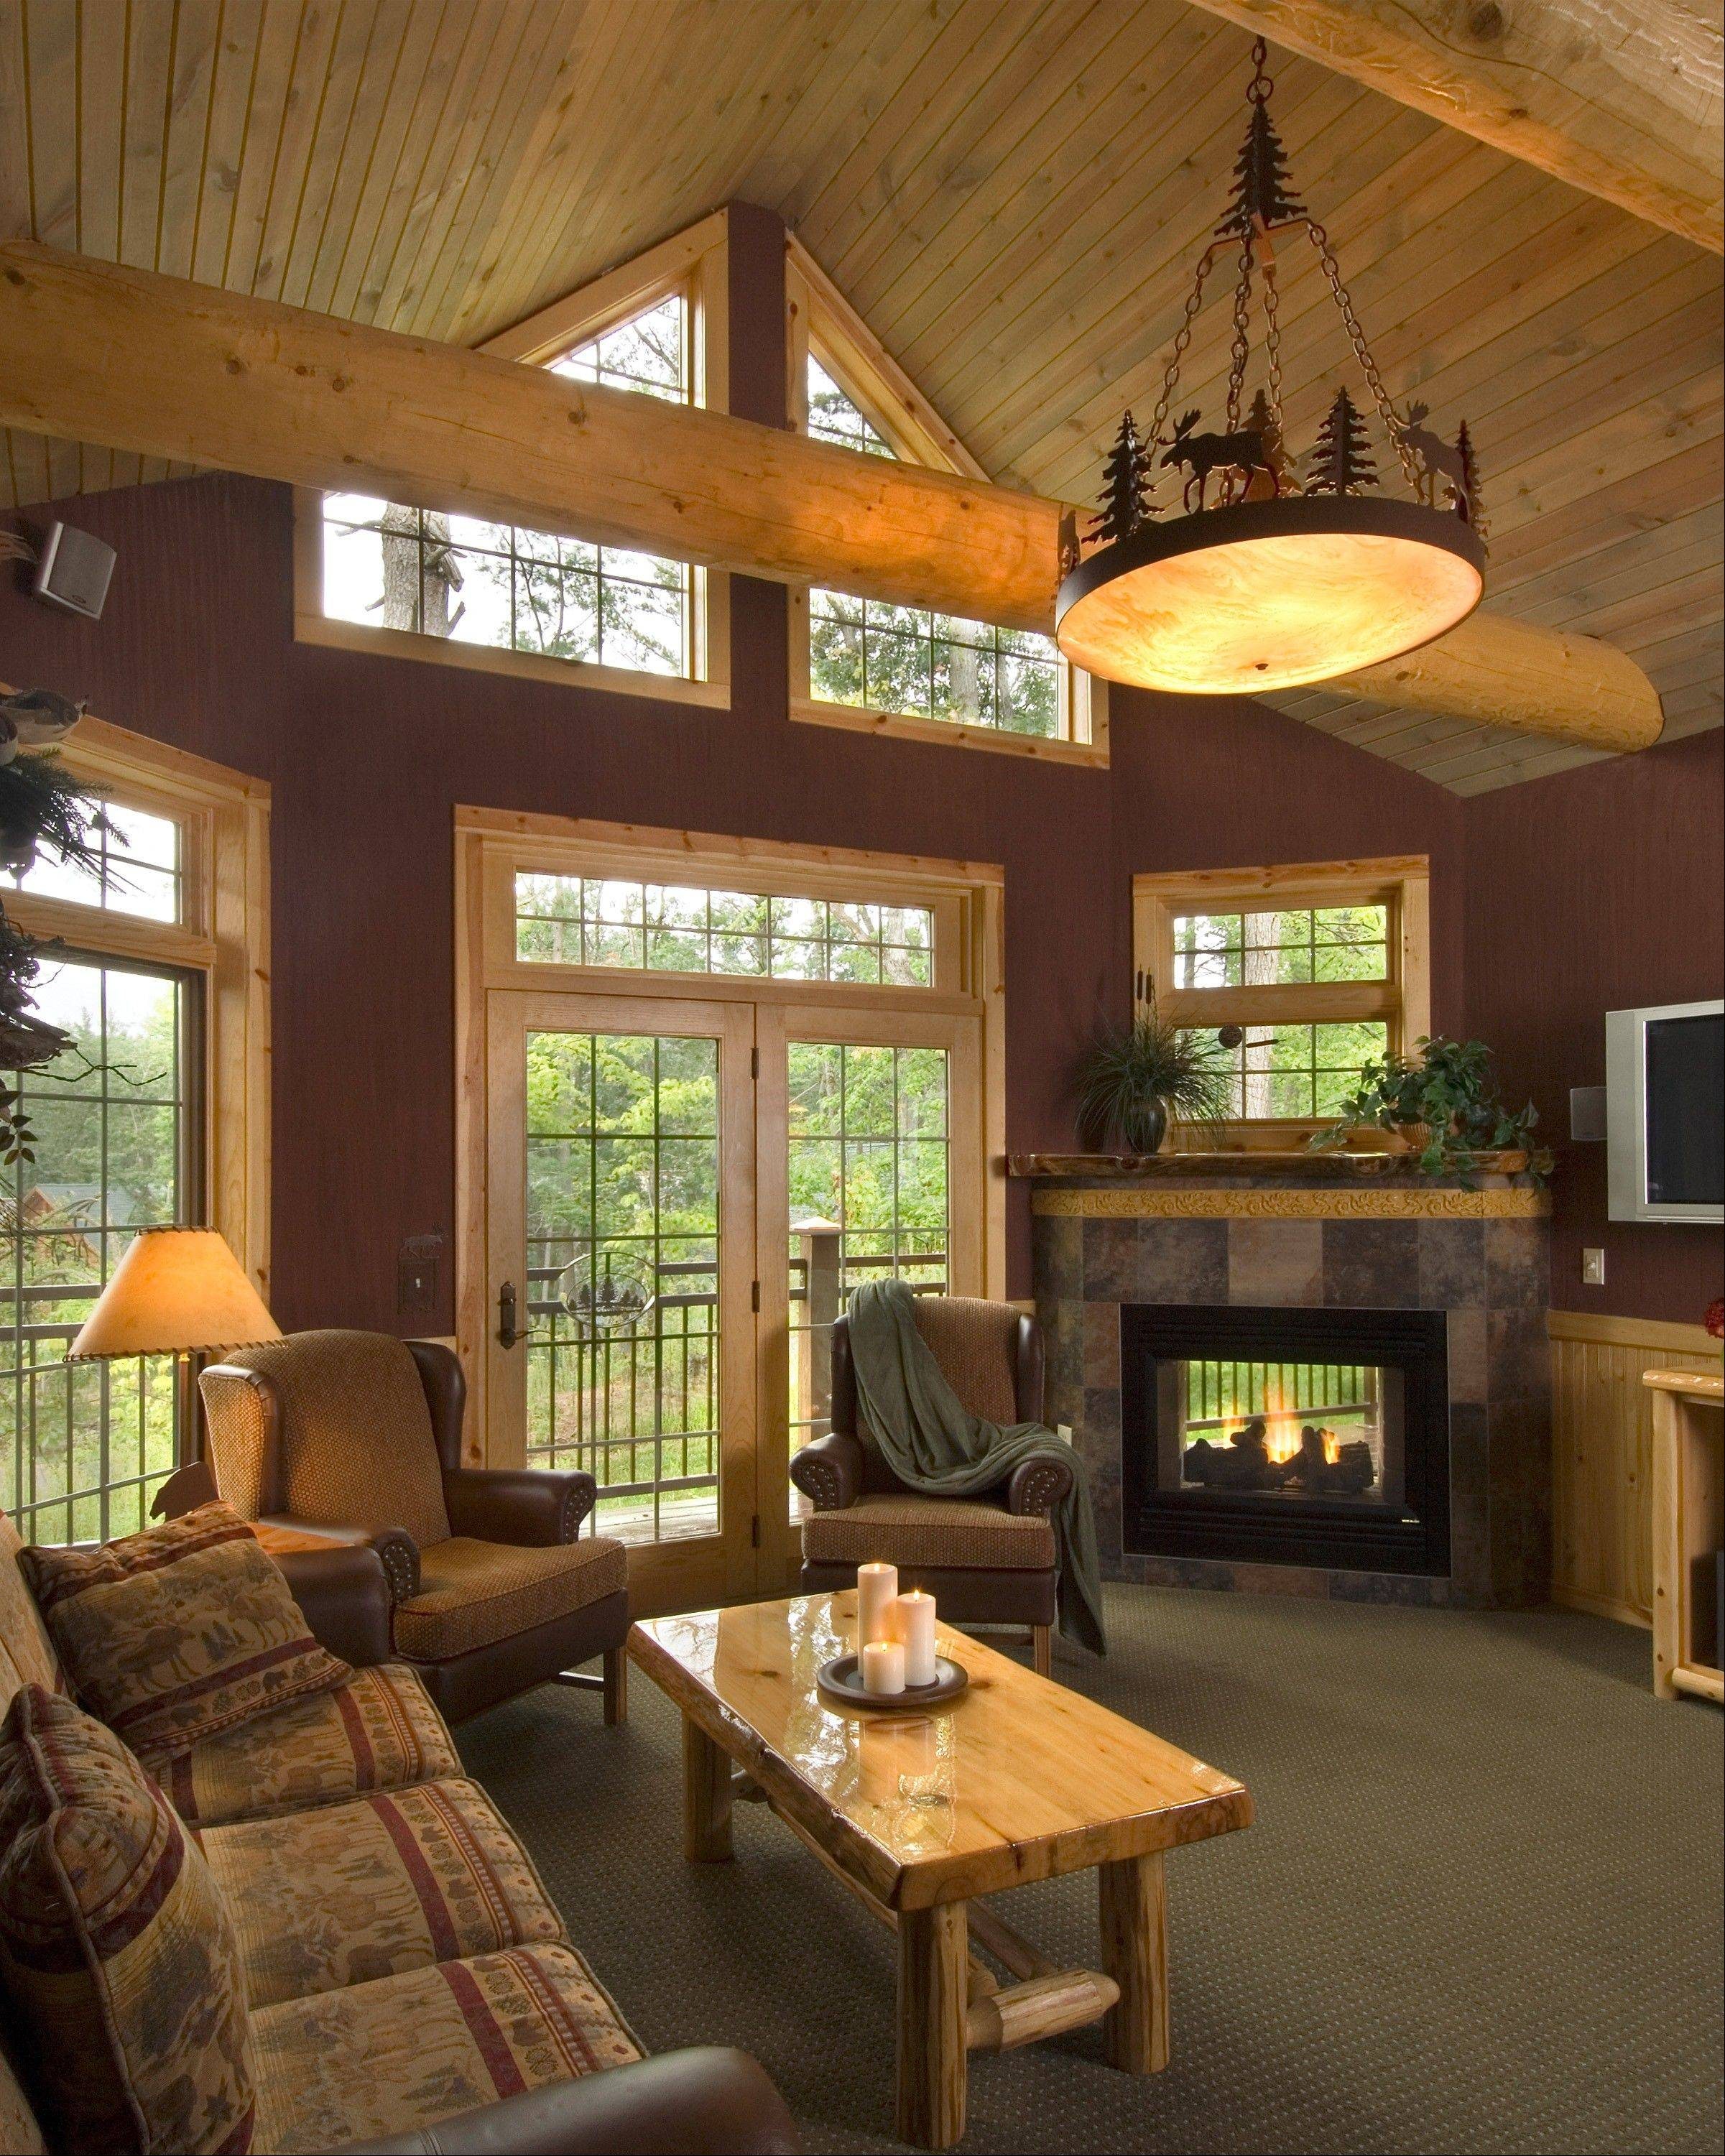 Wilderness Cabins, a part of the Wilderness Territory in Wisconsin Dells, Wis., features 35 cabins that are more than 3,000 square feet big with four or five bedrooms, depending on style.